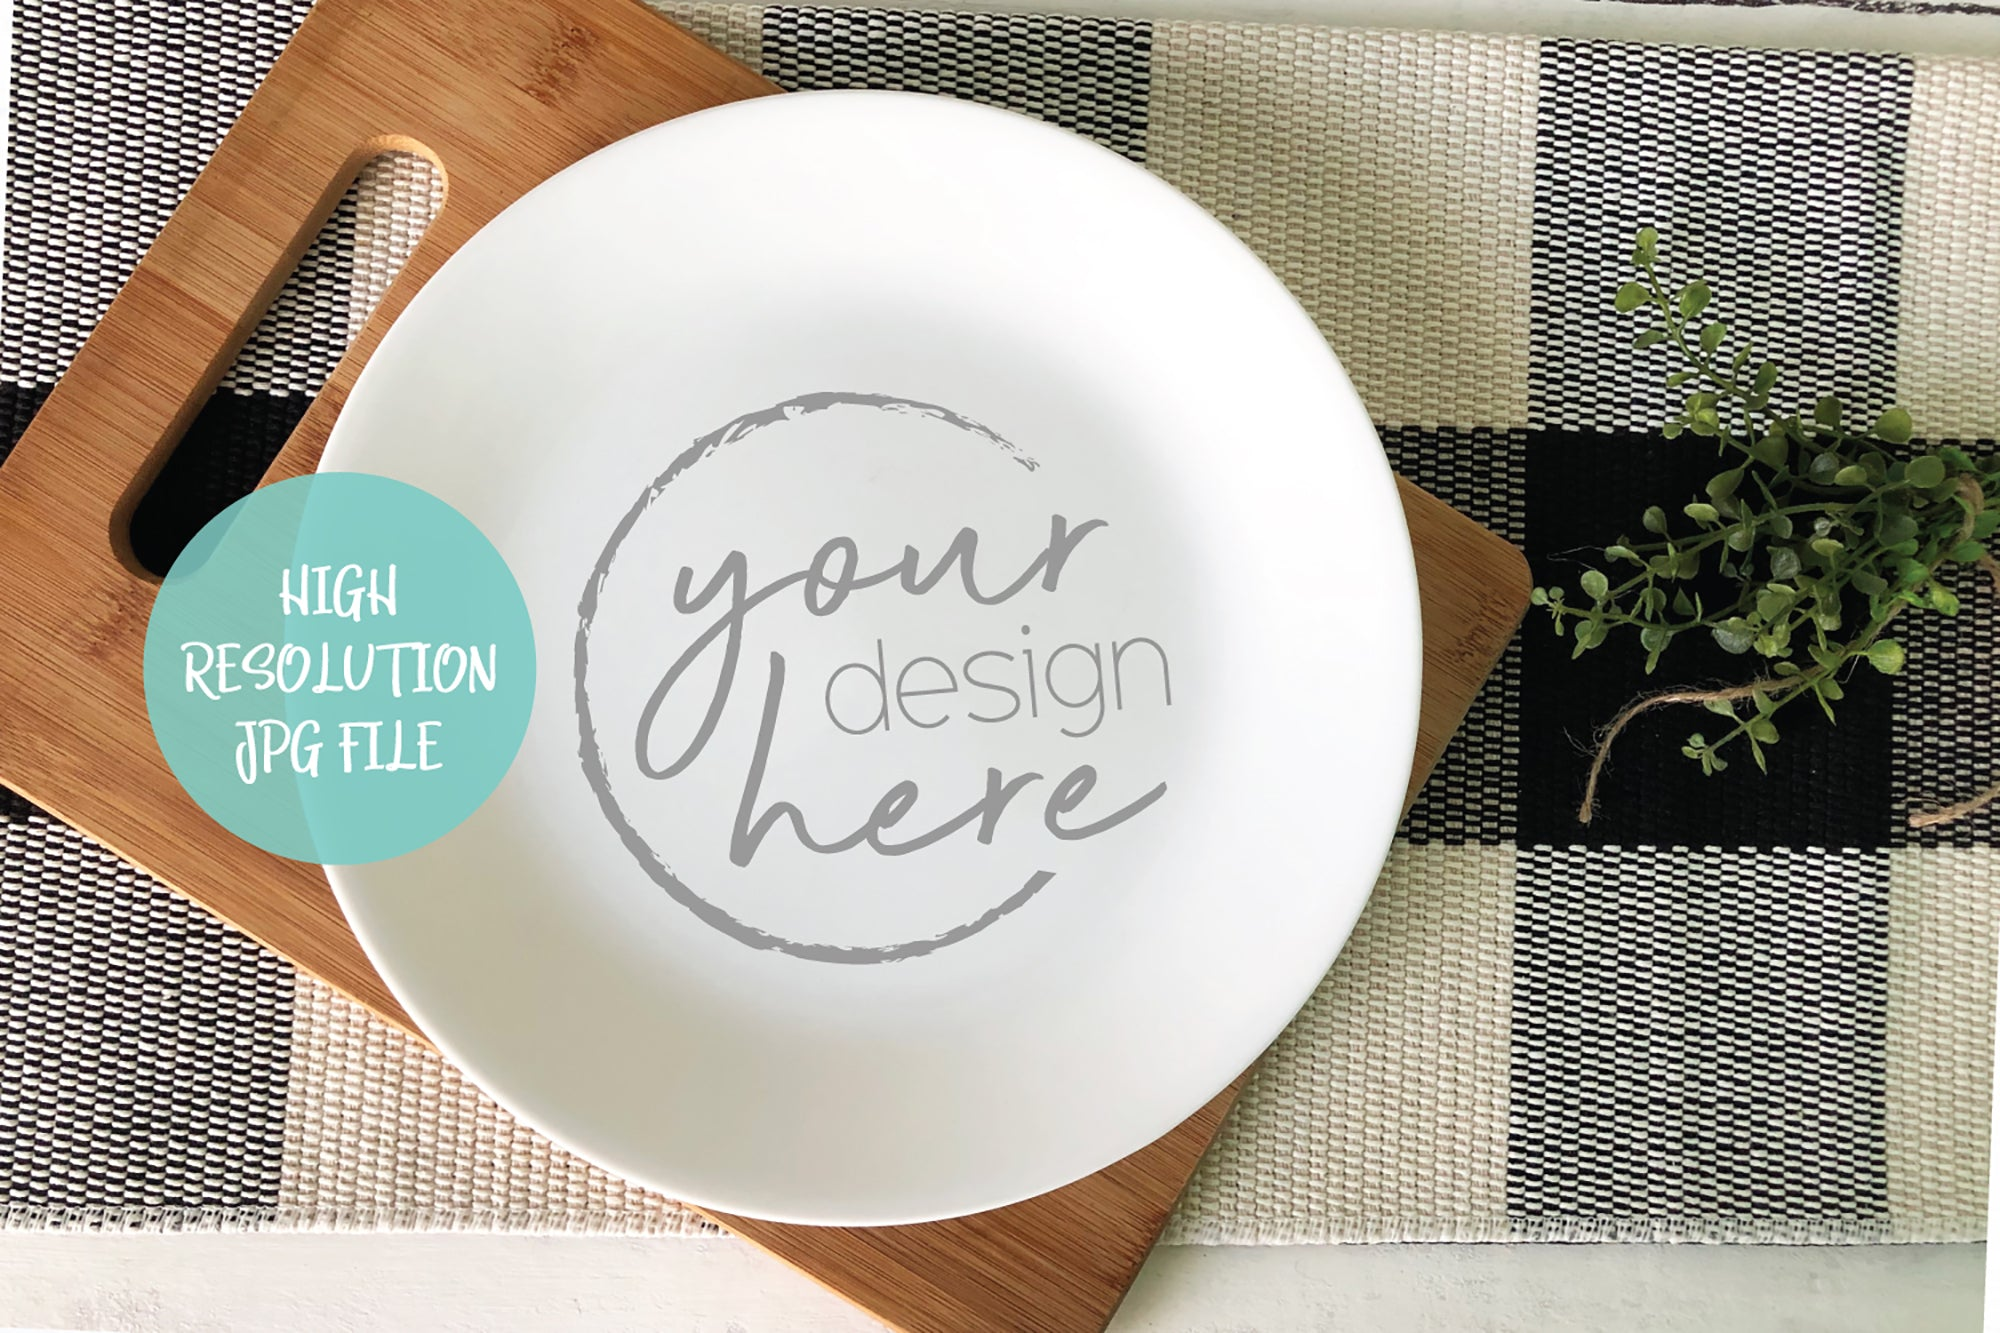 Round White Plate Mockup | Cookie Plate Mockup